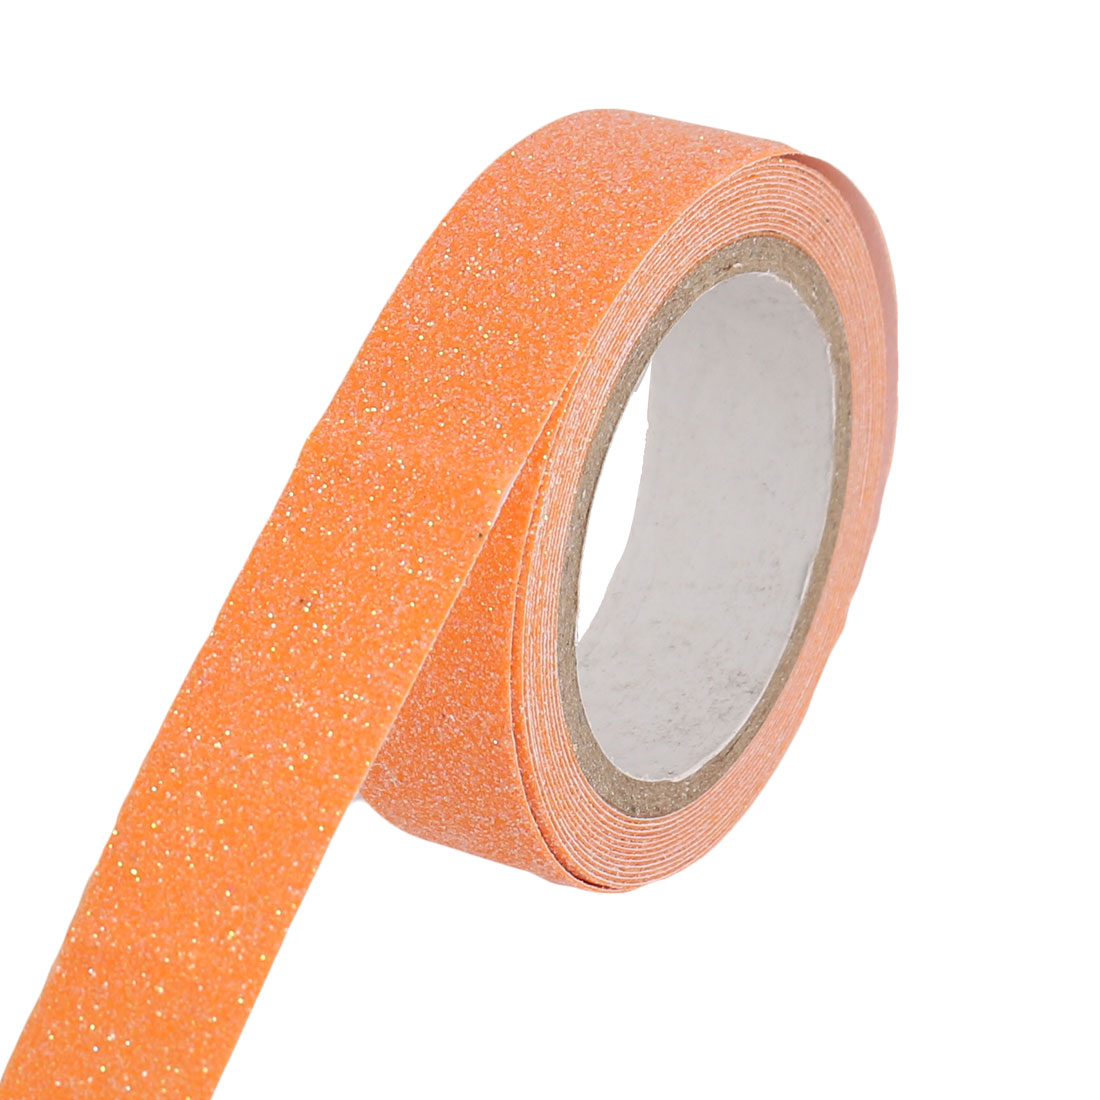 Glitter Decorative DIY Scrapbook Crafting Sticky Paper Washi Tape Sticker Orange